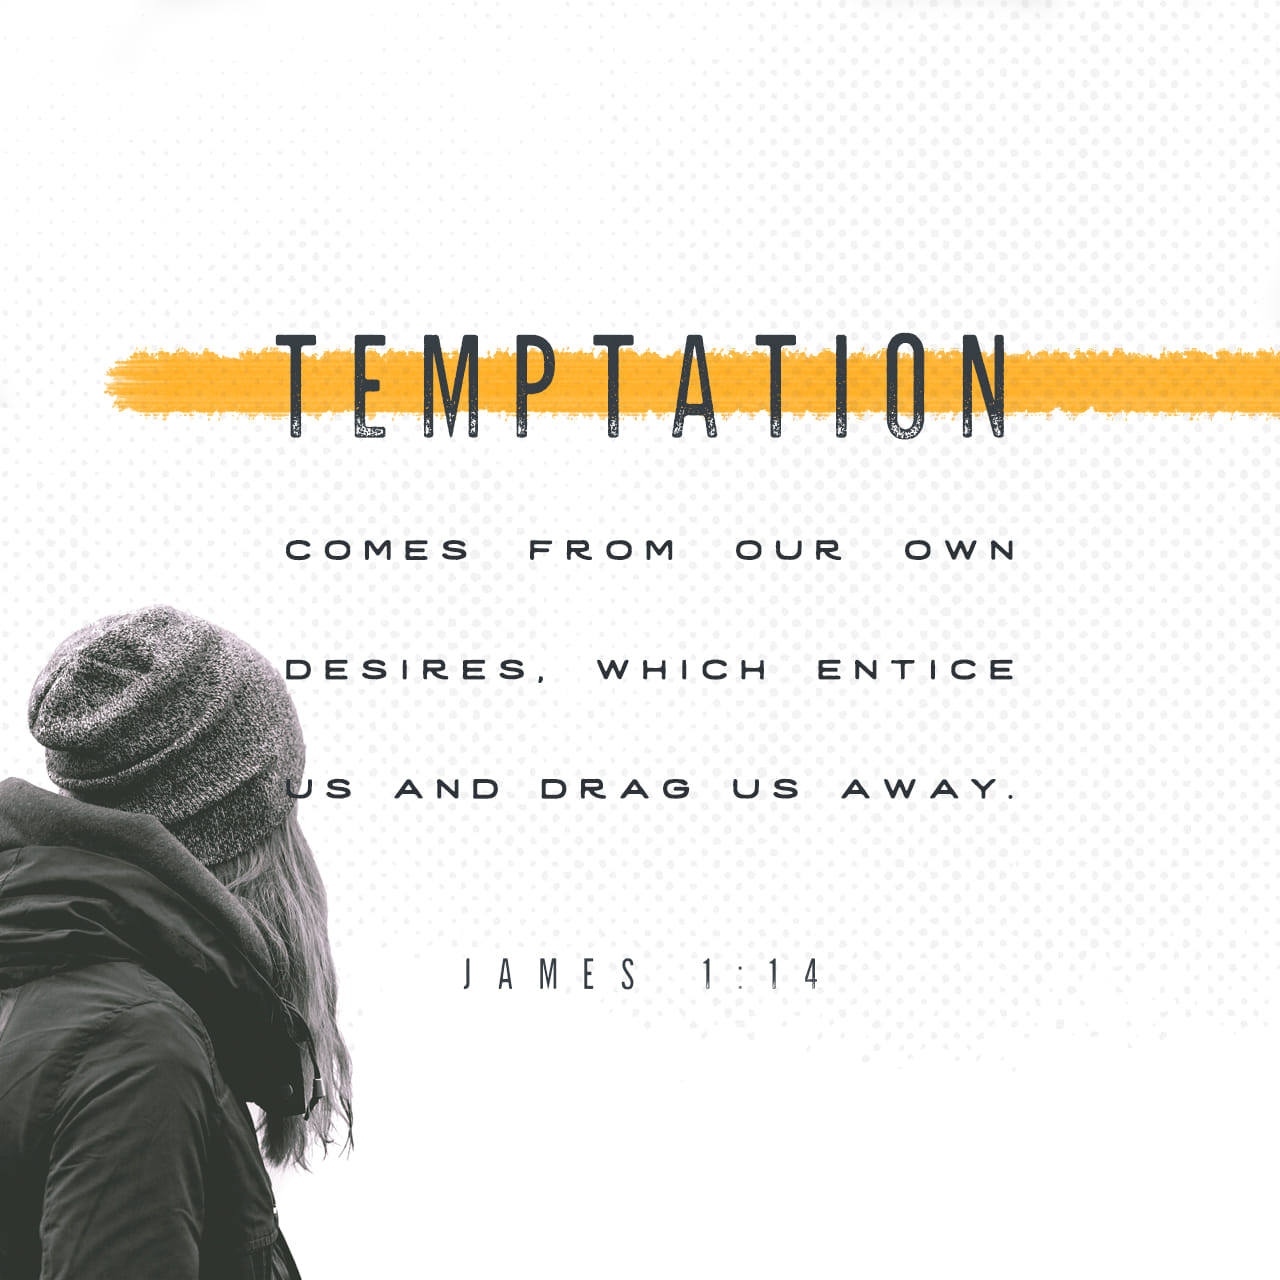 James 1:14-16 But each one is tempted when he is lured and enticed by his own desires. Then when desire conceives, it gives birth to sin, and when sin is full grown, it gives birth to death. Do not be led astray, m | New English Translation (NET)